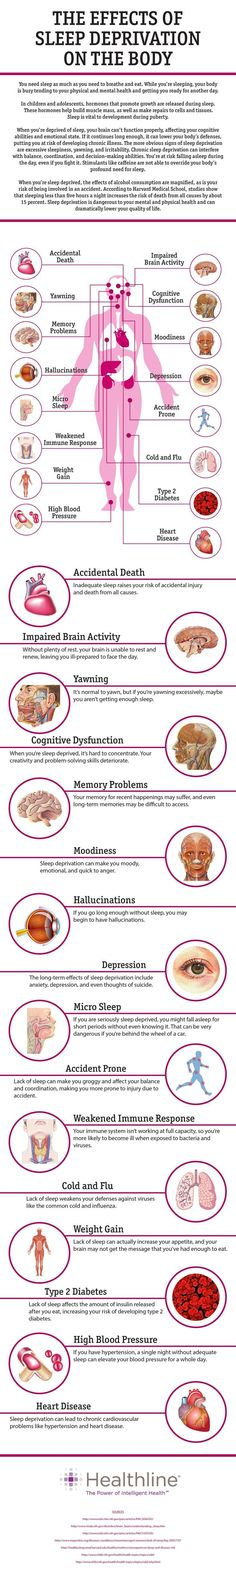 The Effects of Sleep